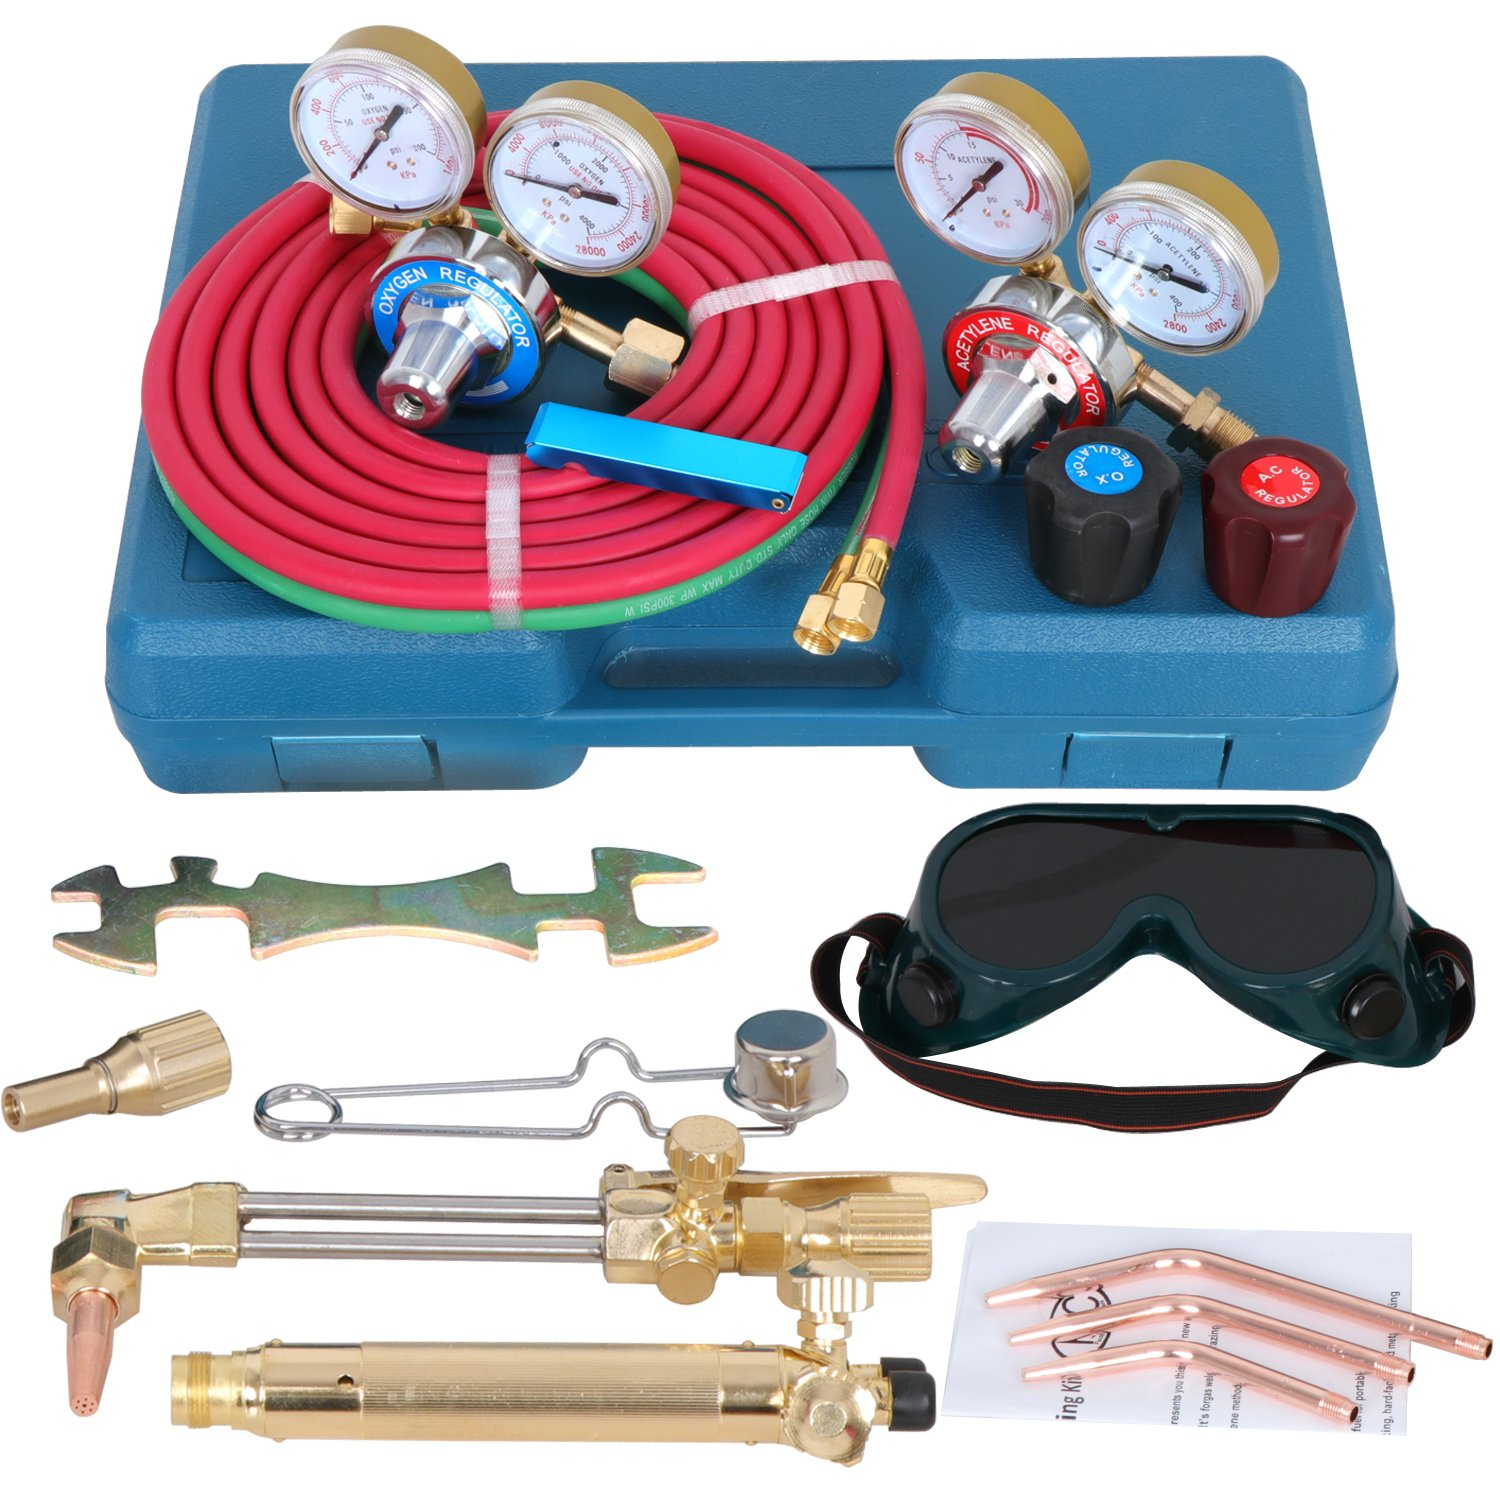 F2C Gas Oxy Oxygen Acetylene Welding & Cutting Brazing Torch Kit Welder Tool Set Kit W/Portable ABS Case (11-Pieces)